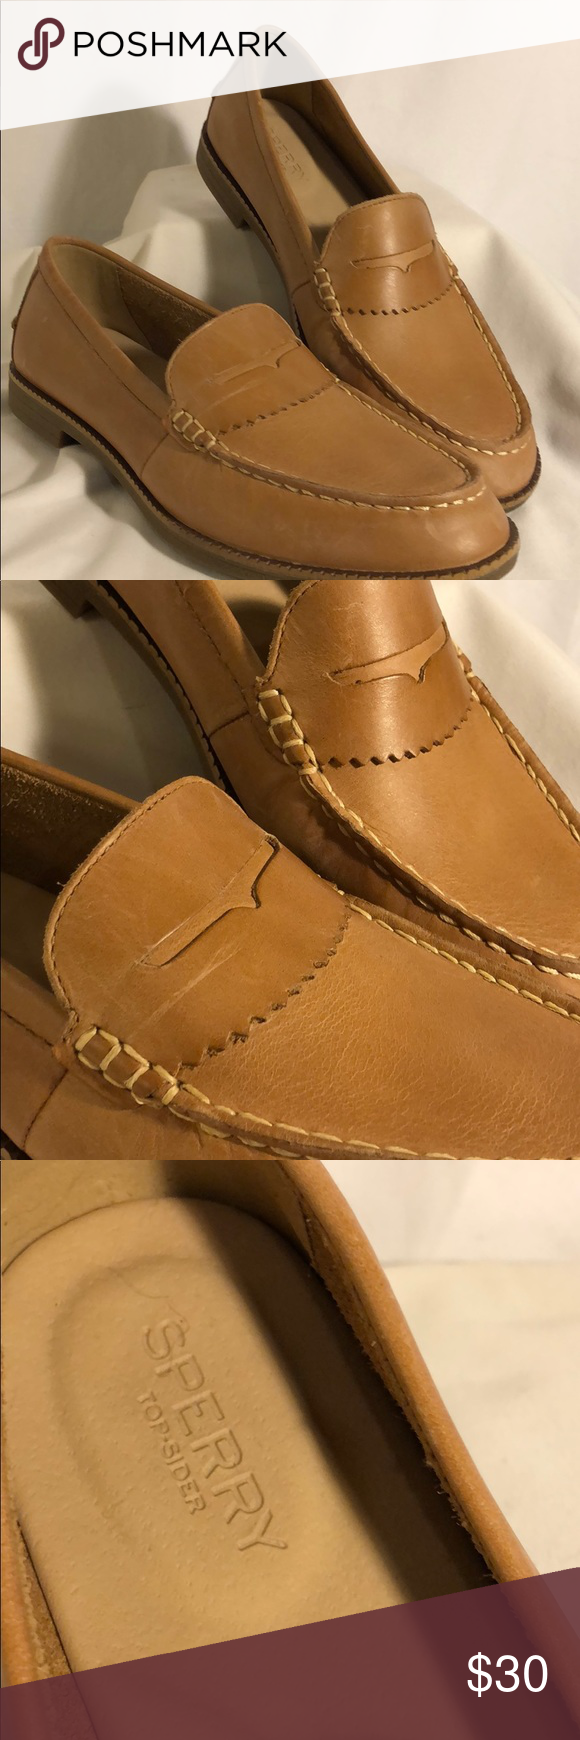 e76780e6df0 Adorable loafer! Women s Sperry Top-Sider Waypoint Penny Loafer - Cognac  This flat is fashioned with penny keeper detailing and a smooth leather  finish that ...